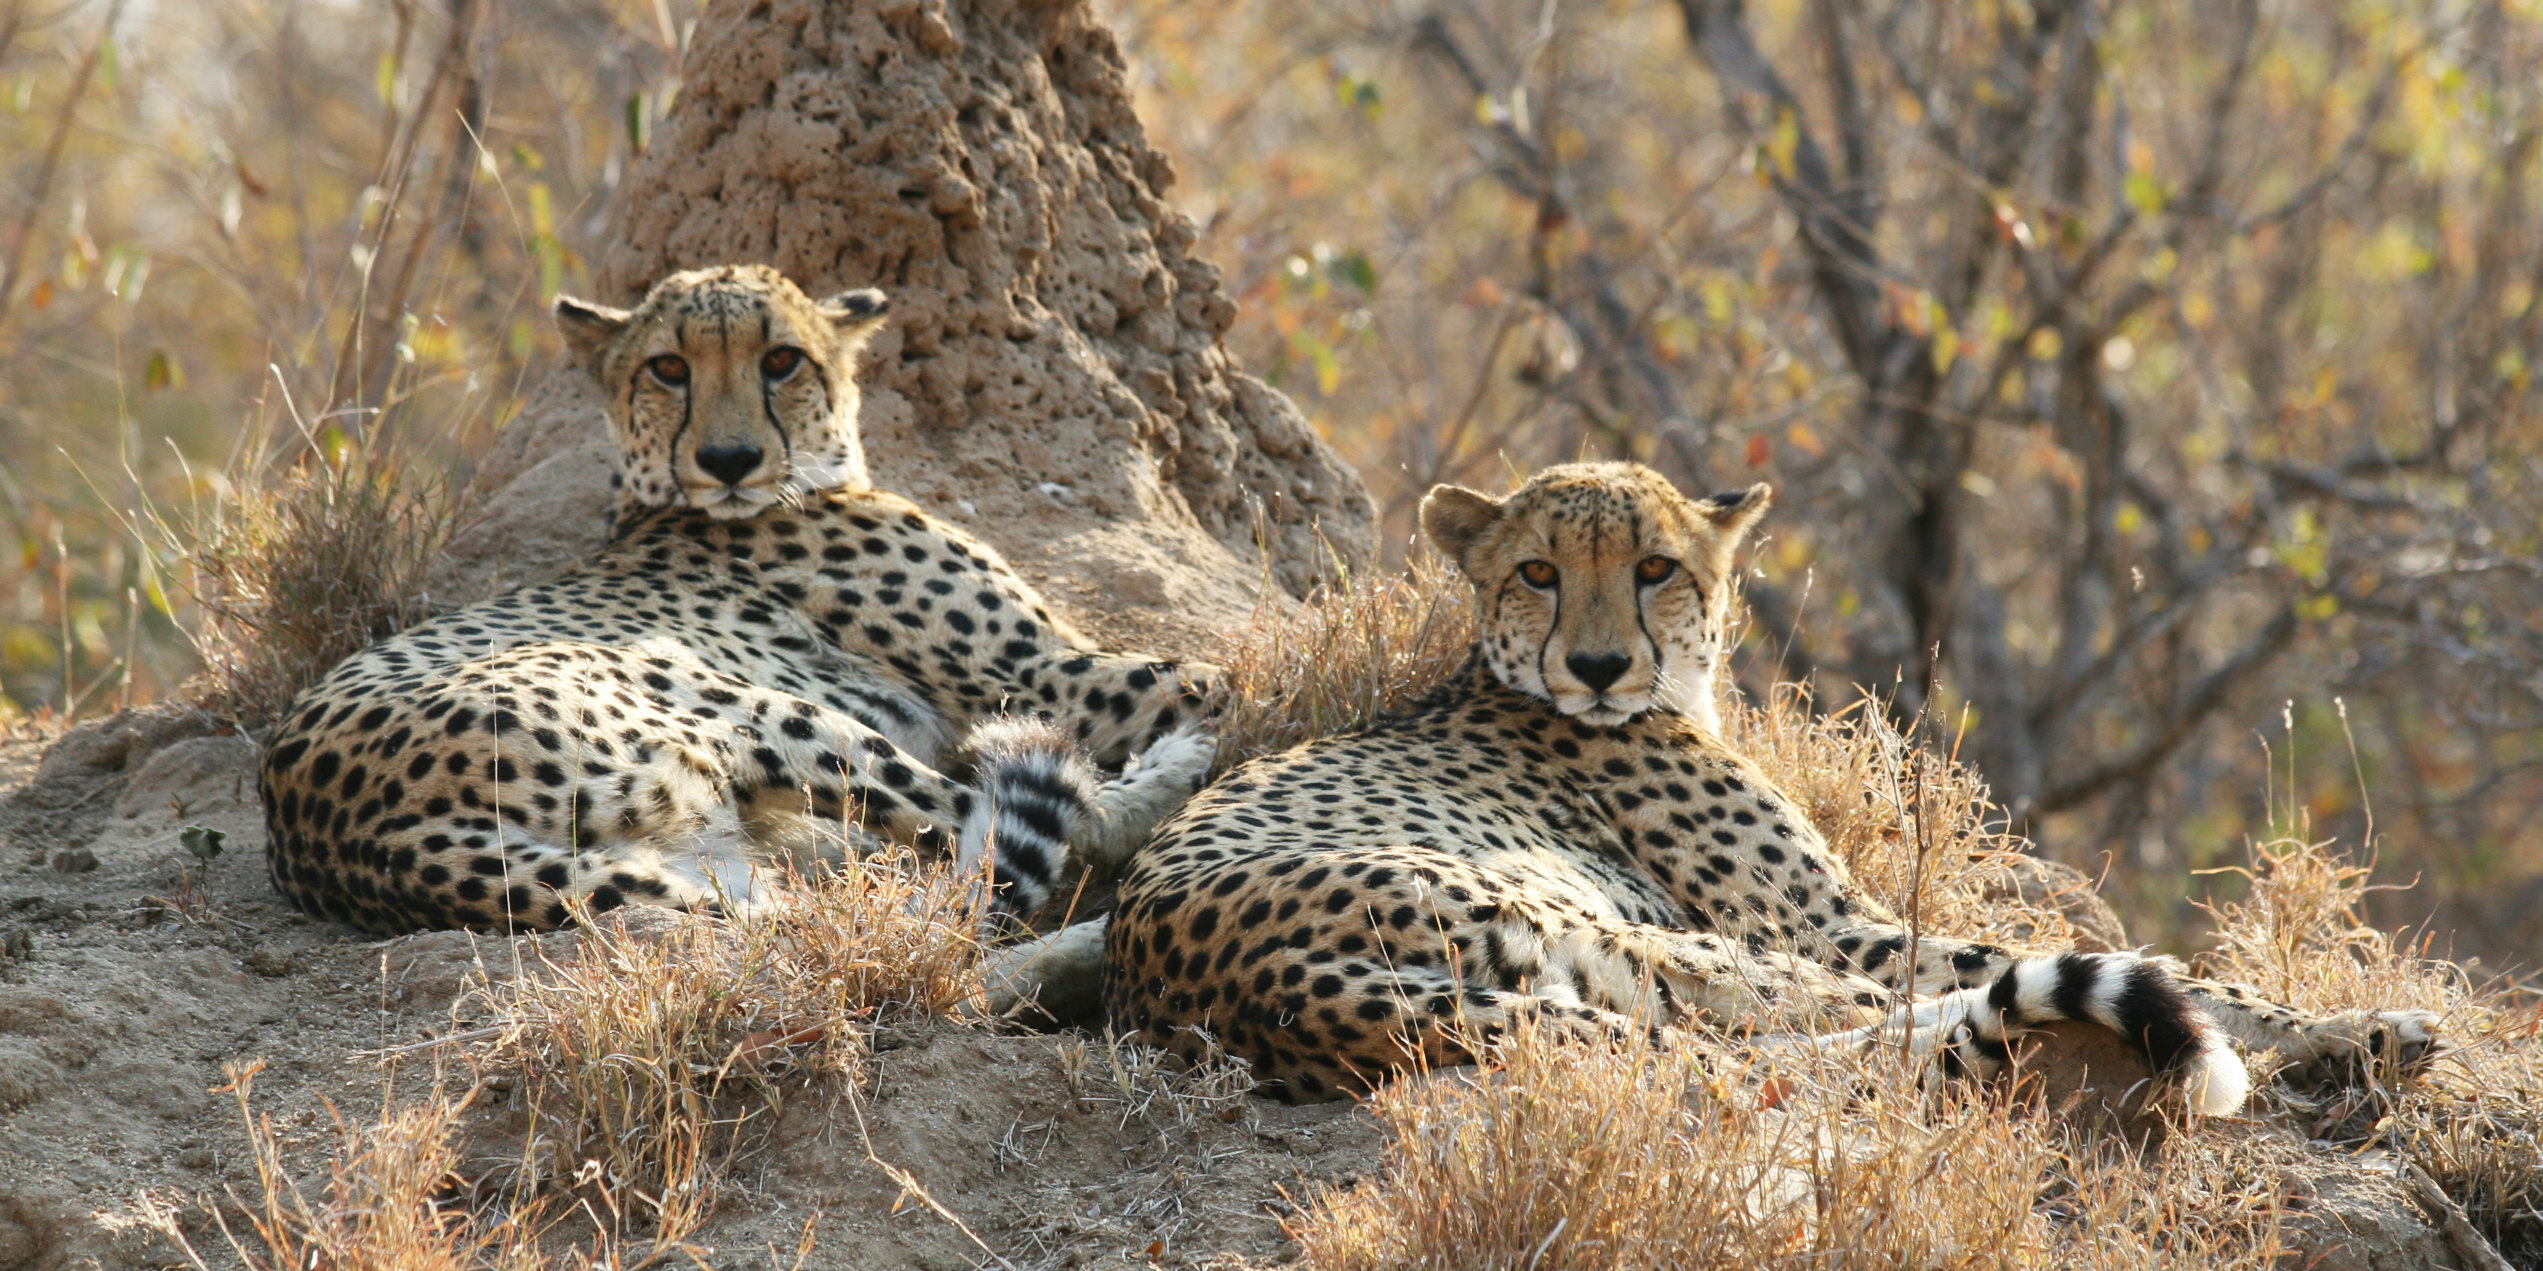 While volunteering with animals in Africa, you might spot these two cheetah males.